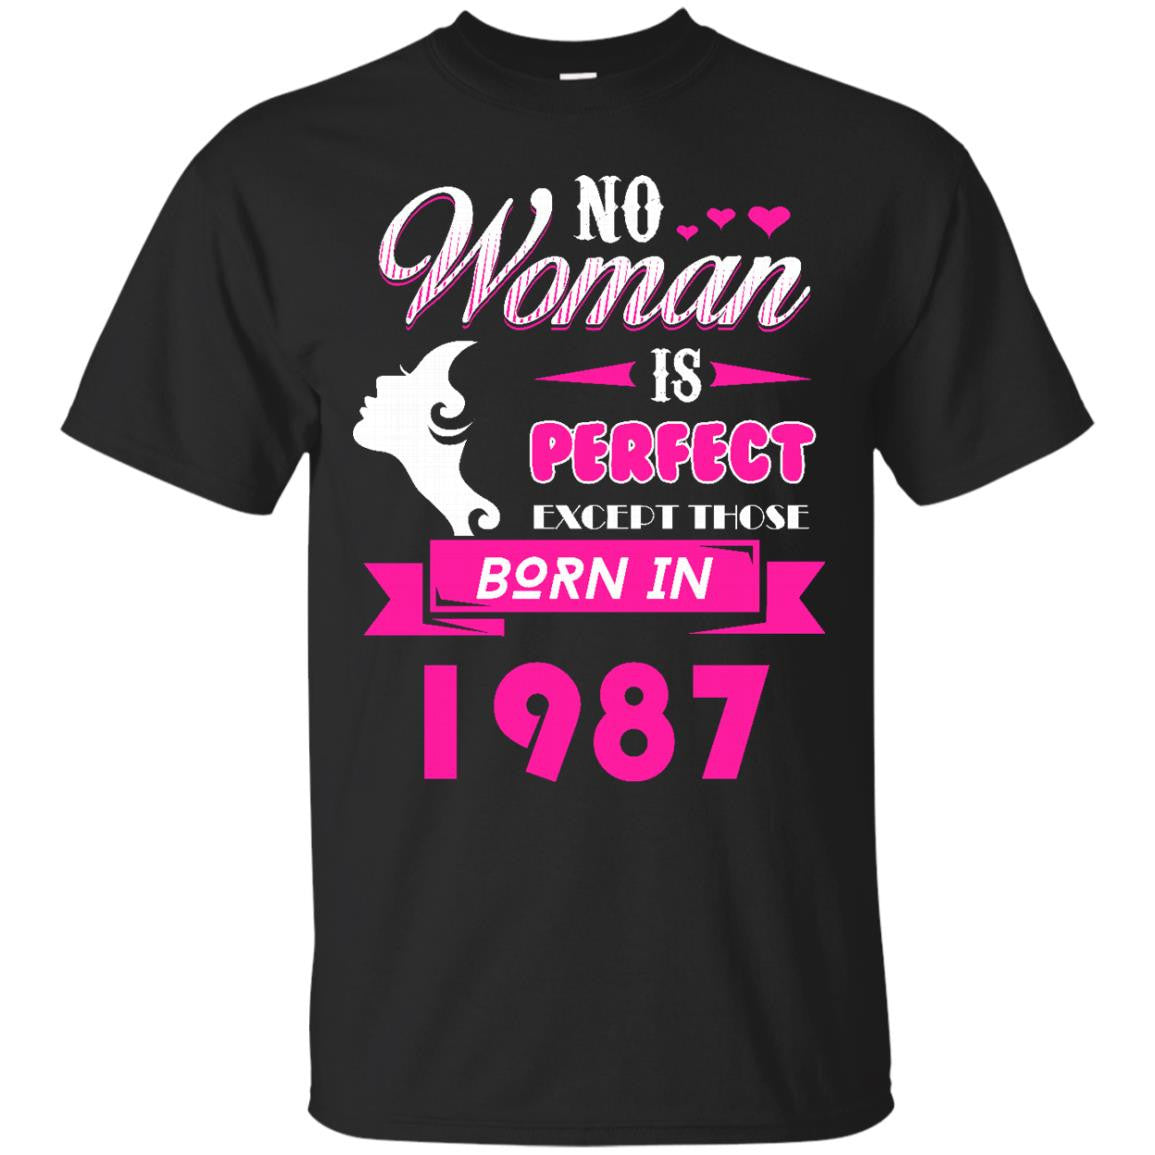 1987 Woman Shirts No Woman Perfect Except Those In 1987 T-shirts Hoodies Sweatshirts